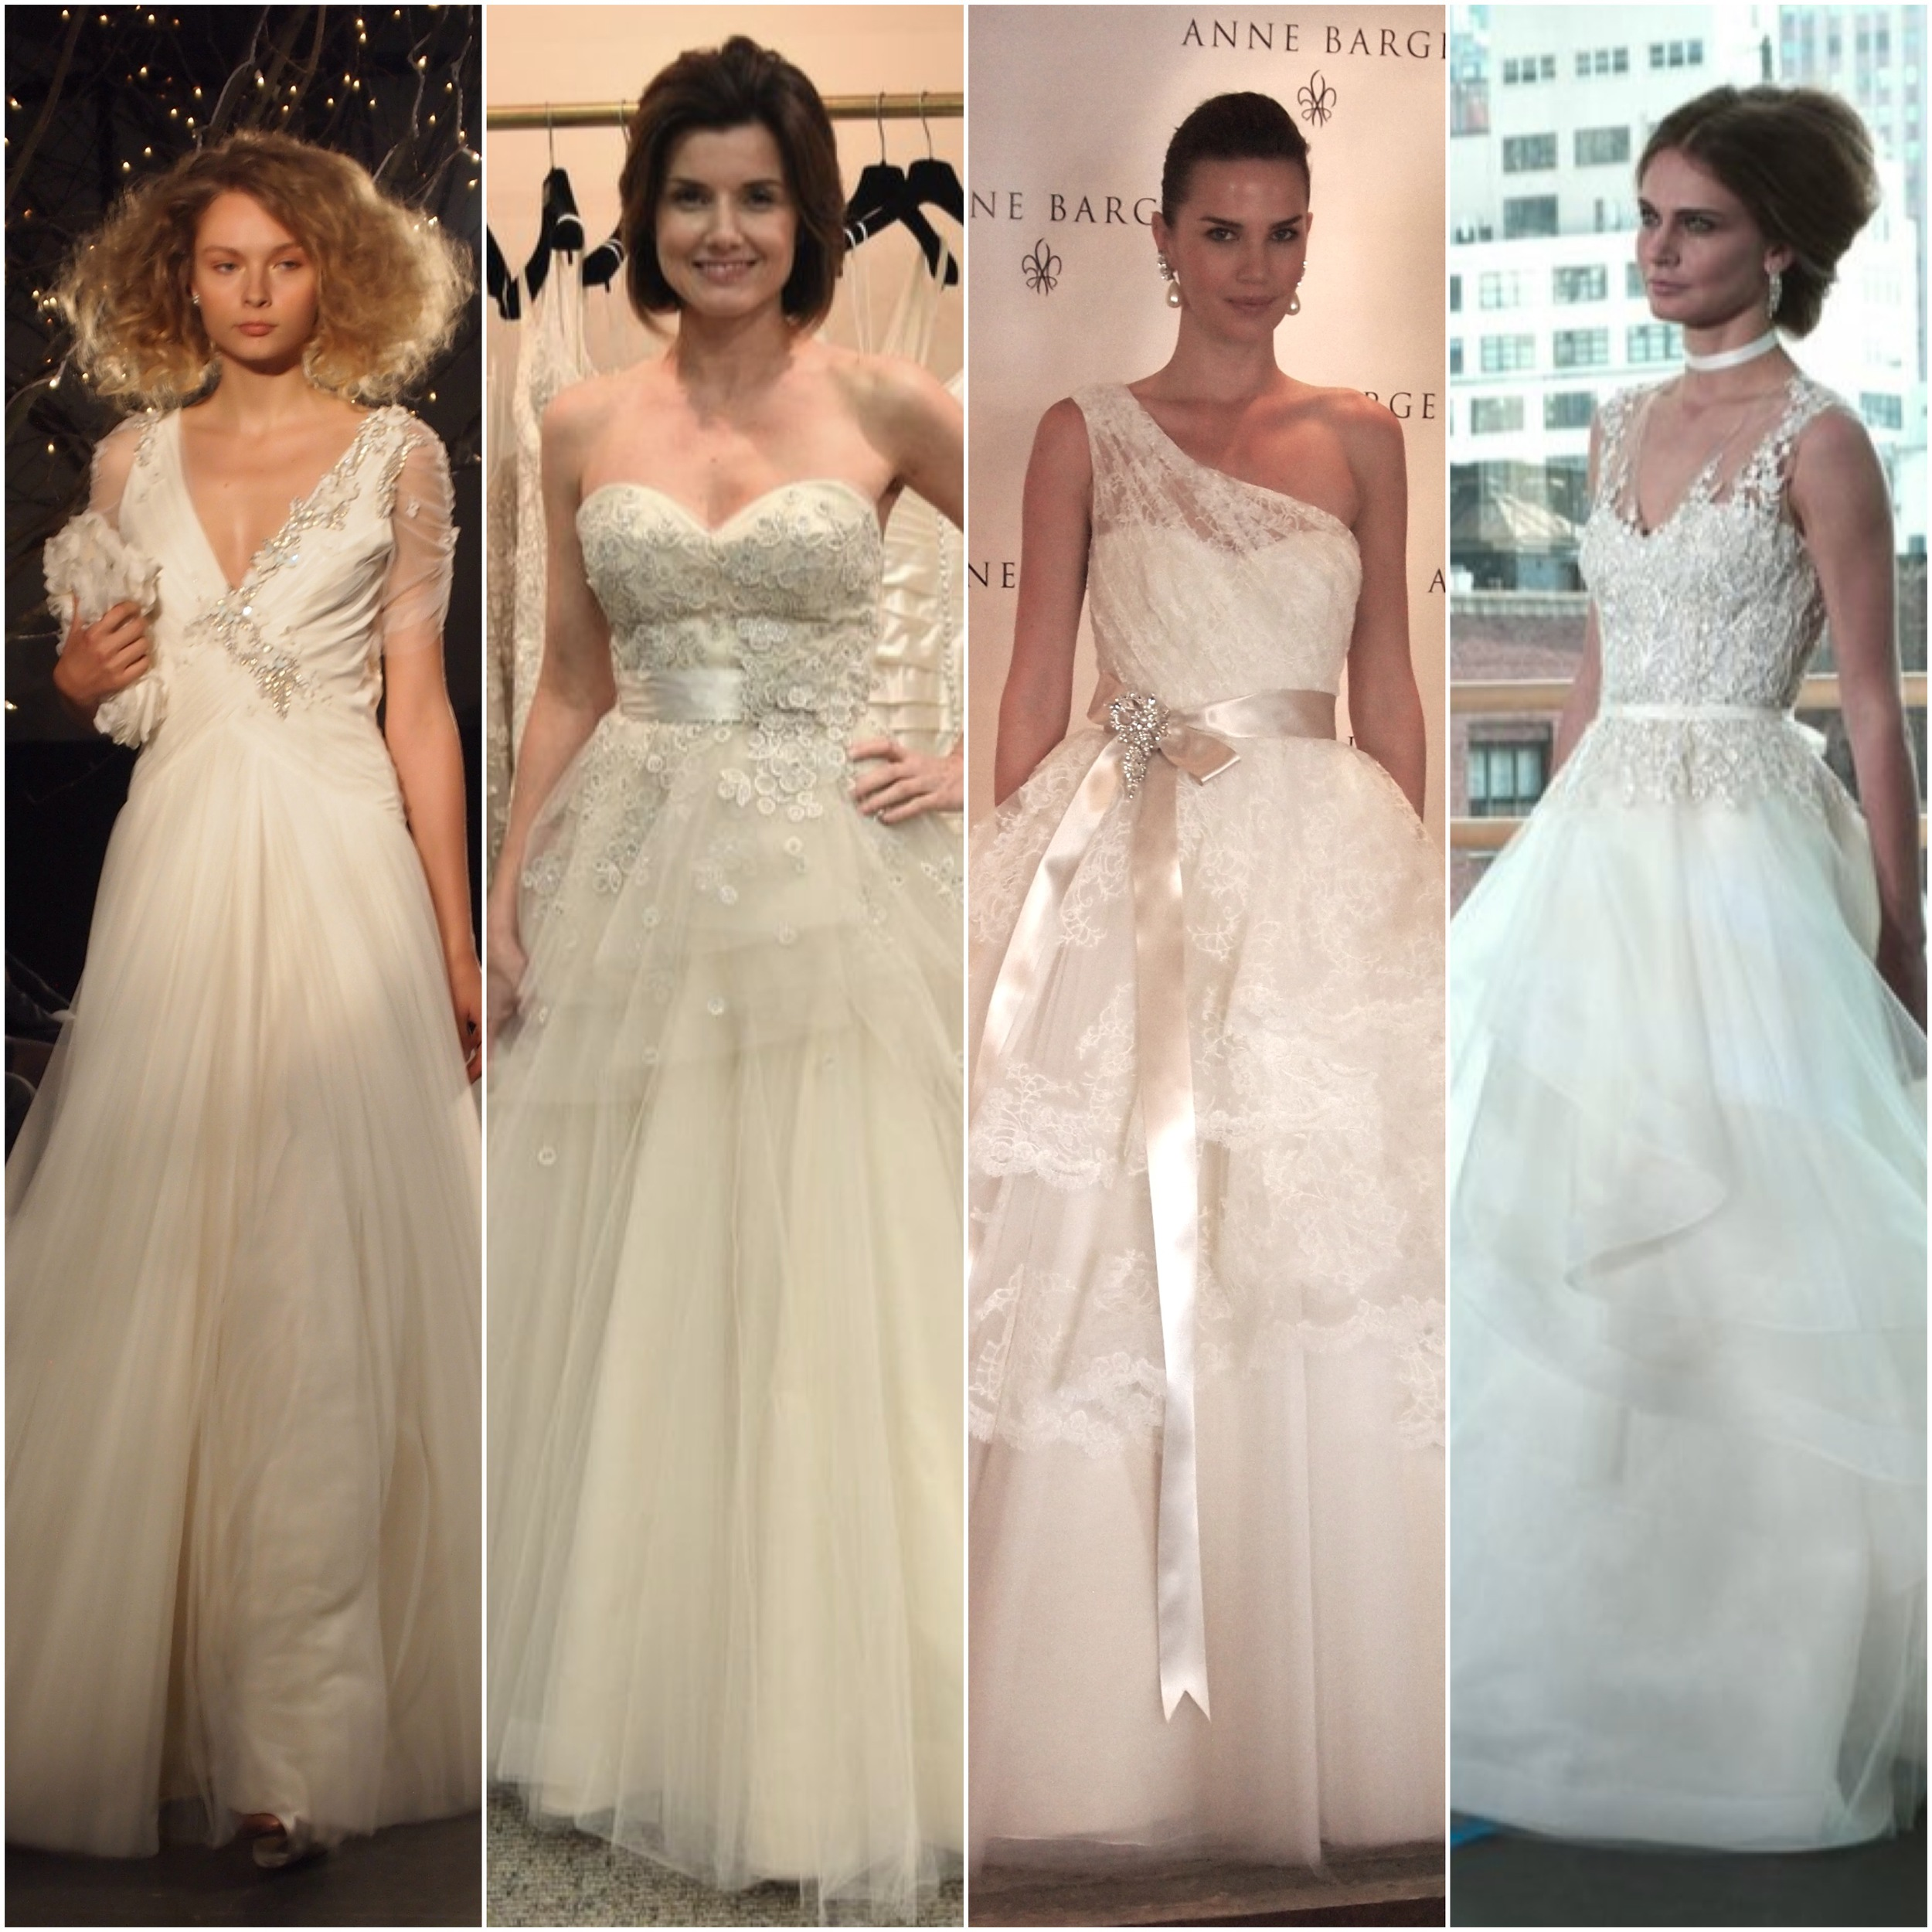 Left to Right: Jenny Packham, Liancarlo, Anne Barge, Rivini